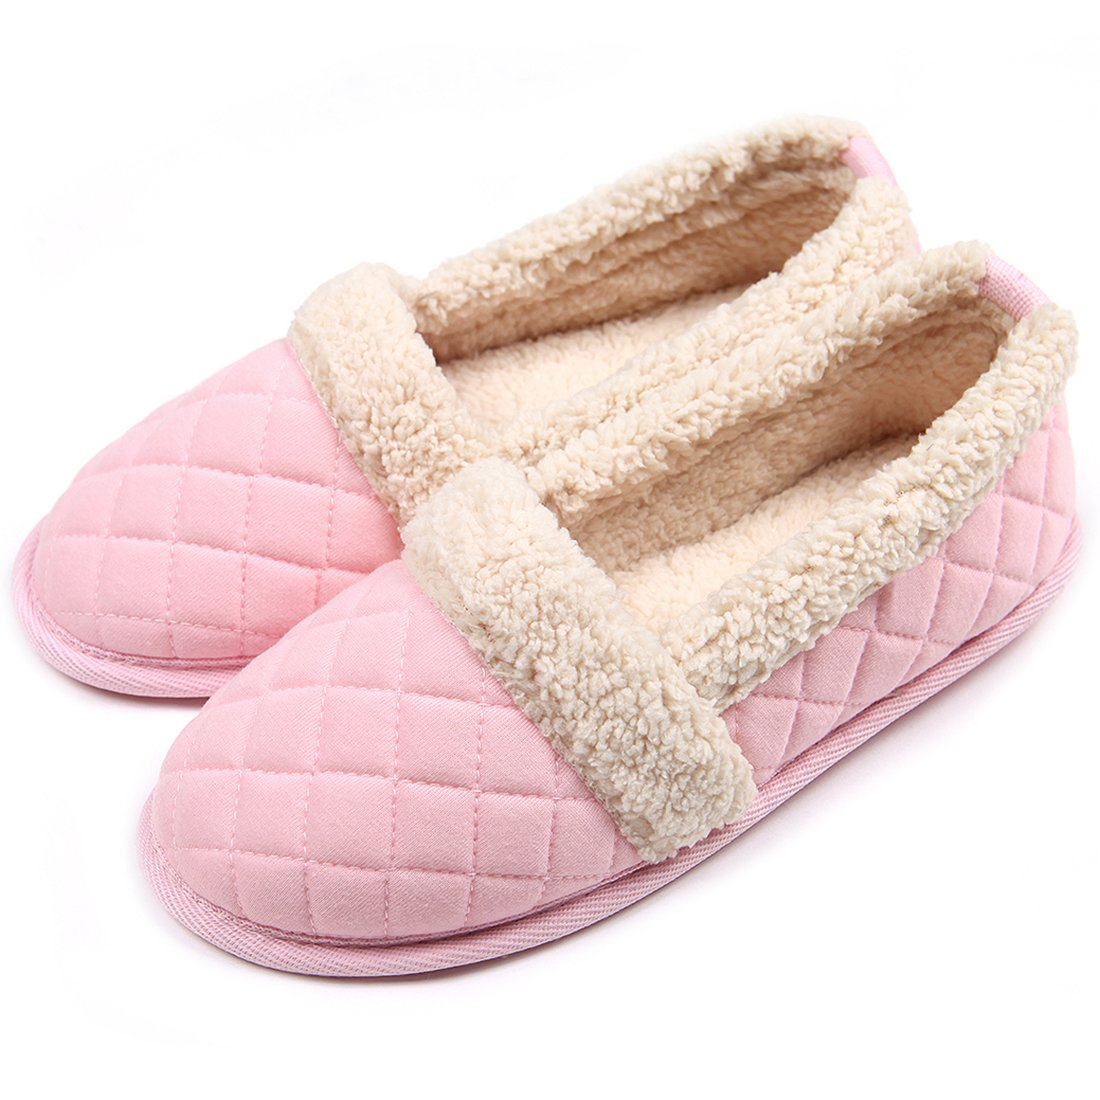 ChicNChic Women Plush House Slippers Ladies Non Slip Indoor Winter Bedroom Shoes Pink 9-10 B(M) US